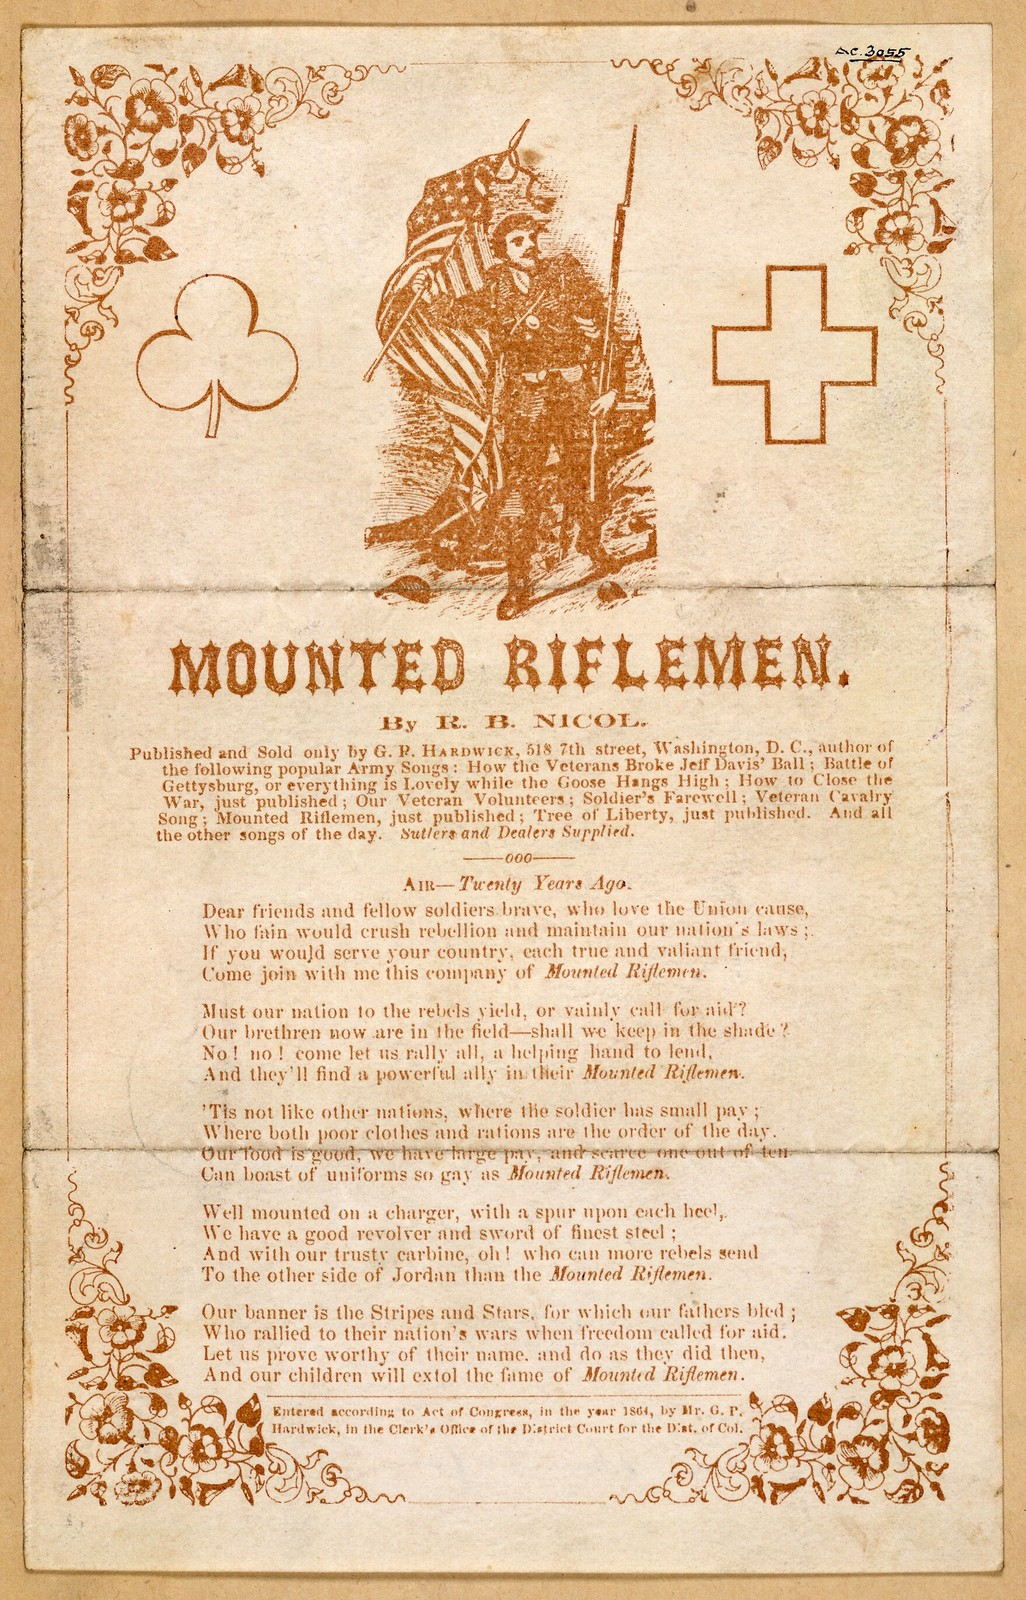 Mounted rifleman. By R. B. Nicol. Published and sold by G. P. Hardwick, ... Washington, D. C. [c. 1864]